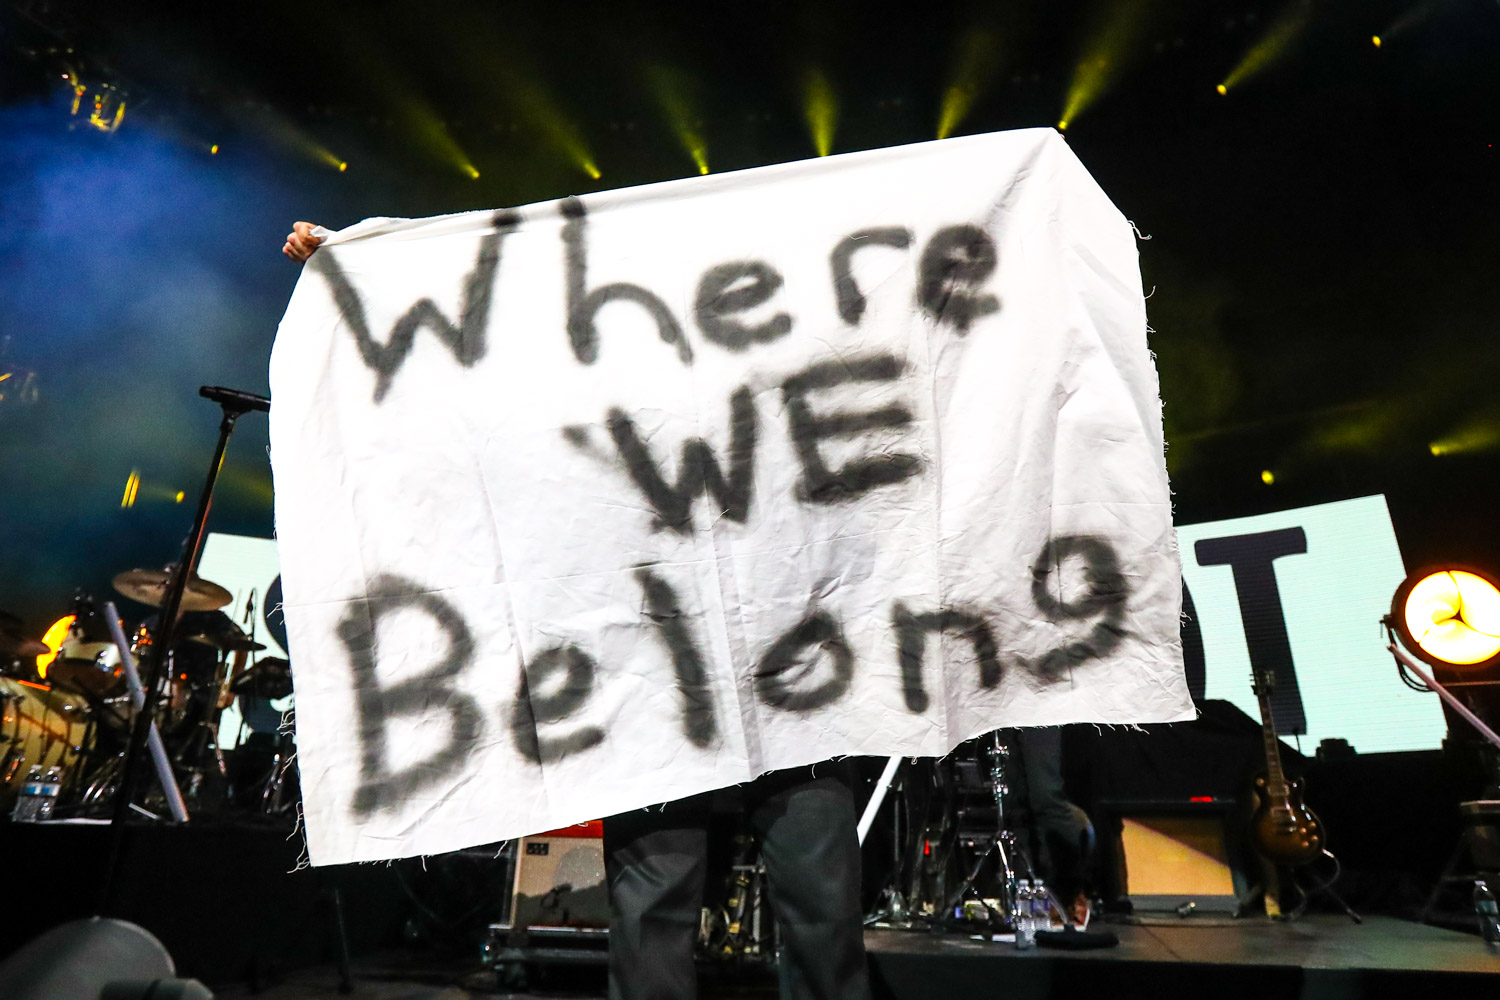 Jon Foreman of Switchfoot holding up a Where We Belong sign